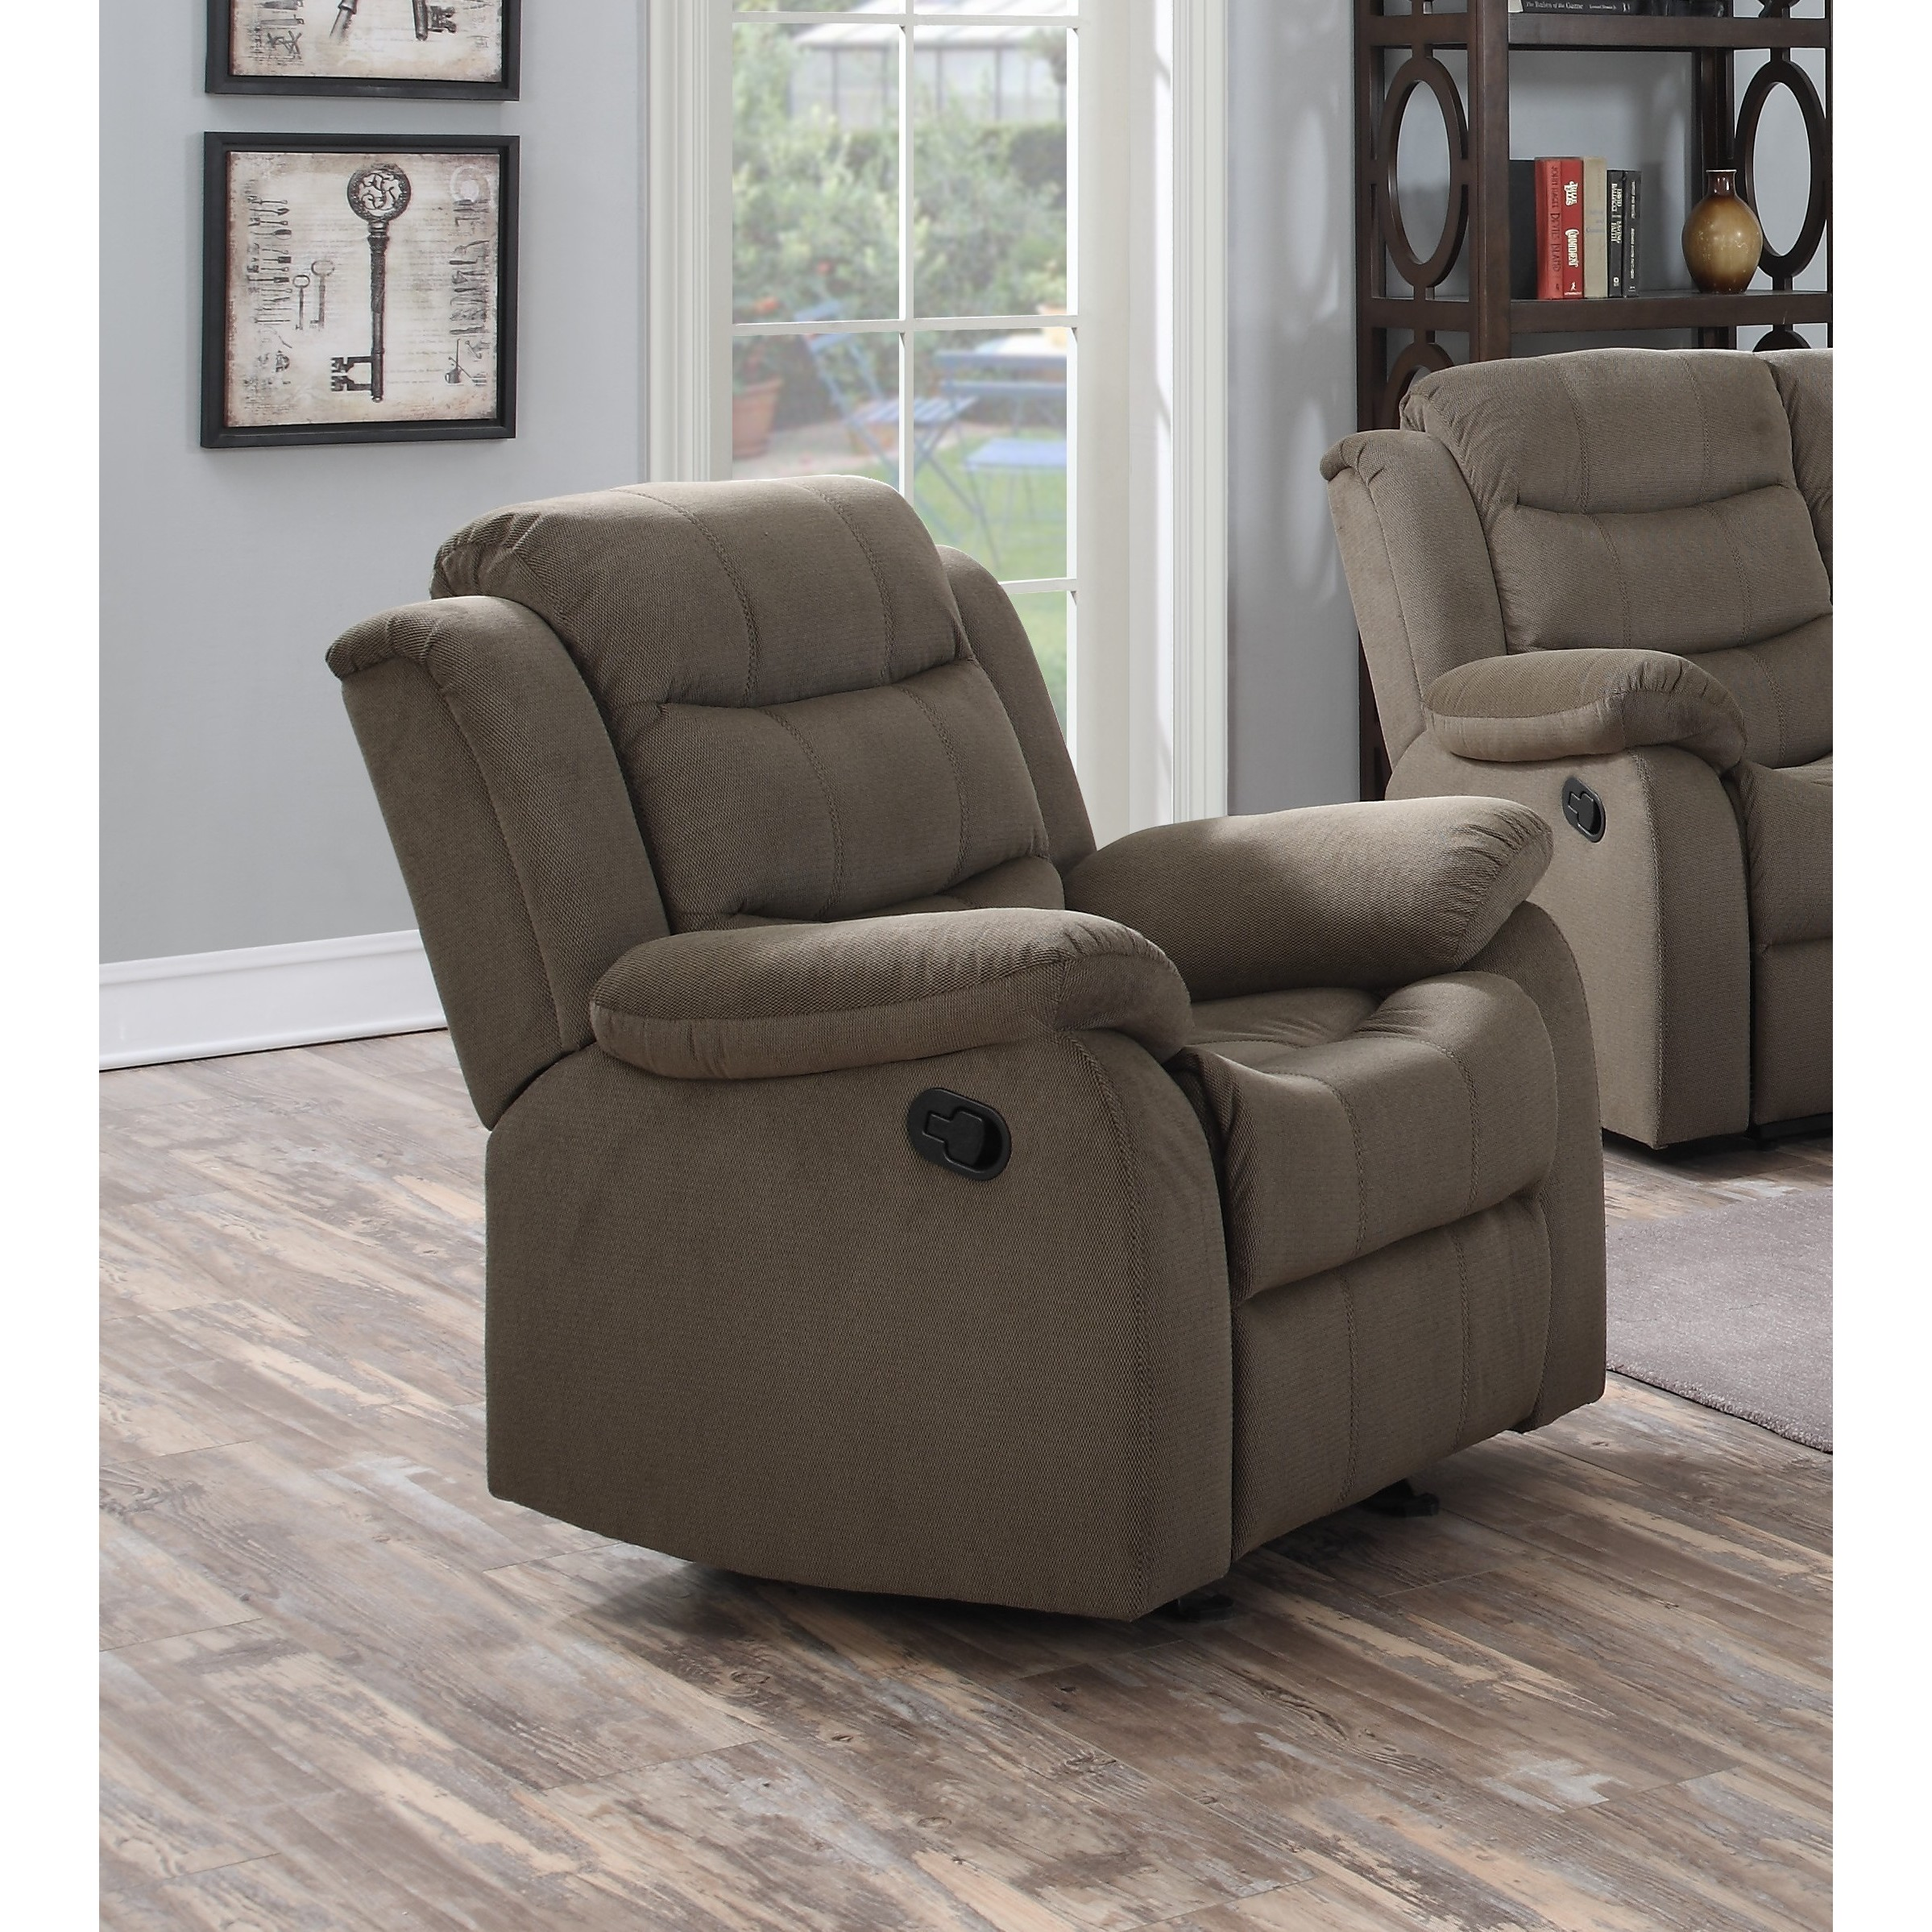 Lyke Home Carter Polyester Glider Chair (Taupe), Beige, S...